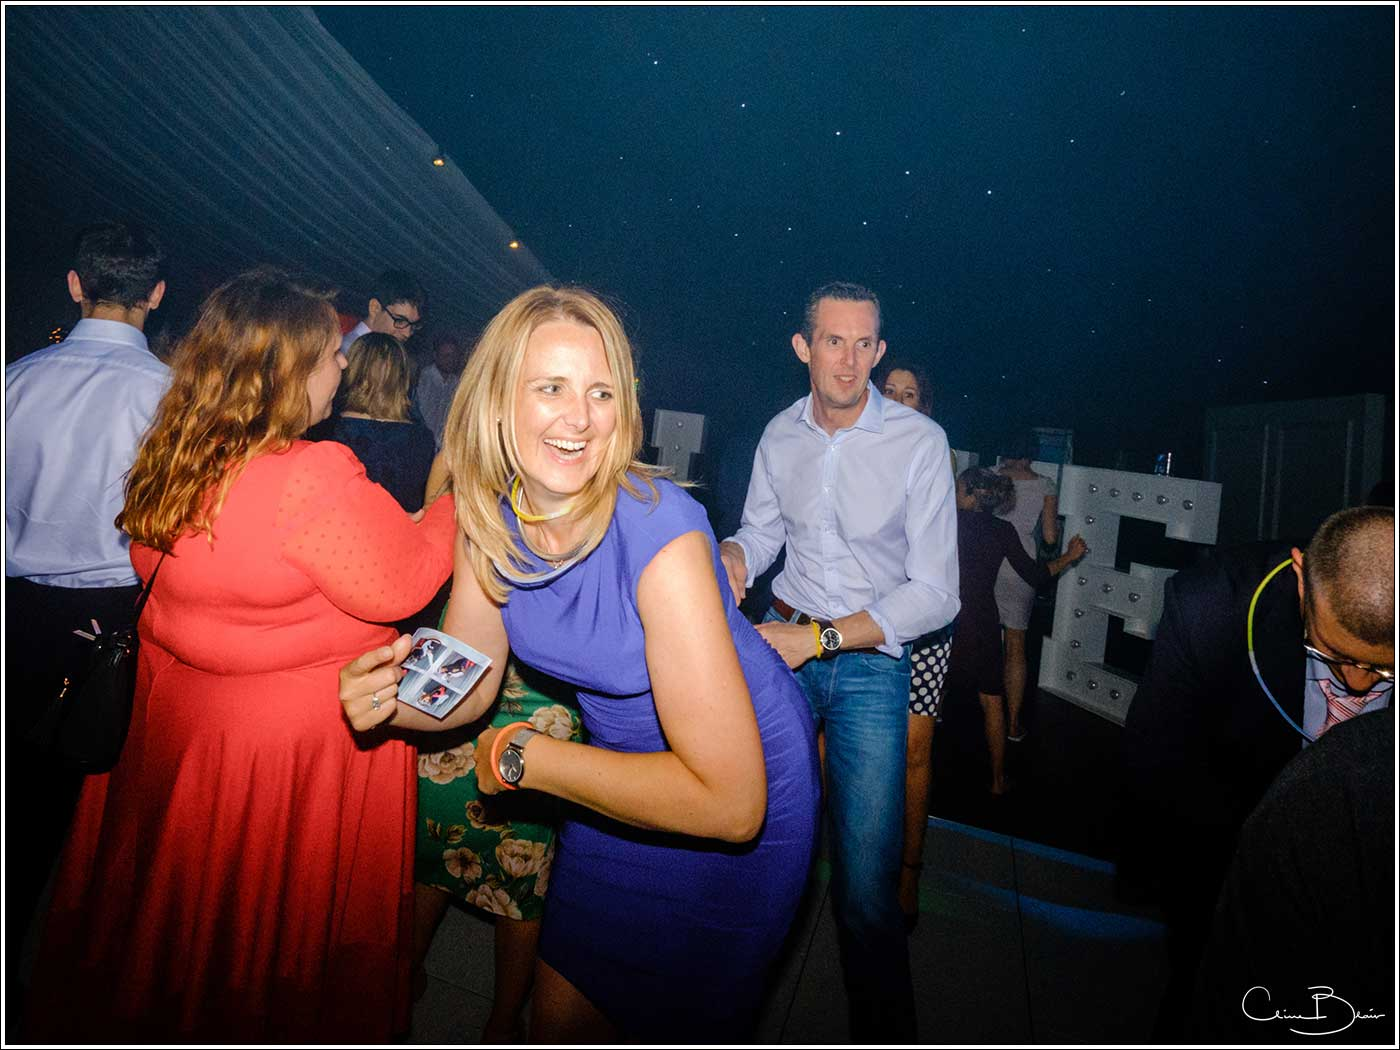 Coombe Abbey wedding photography showing happy woman on the dance floor